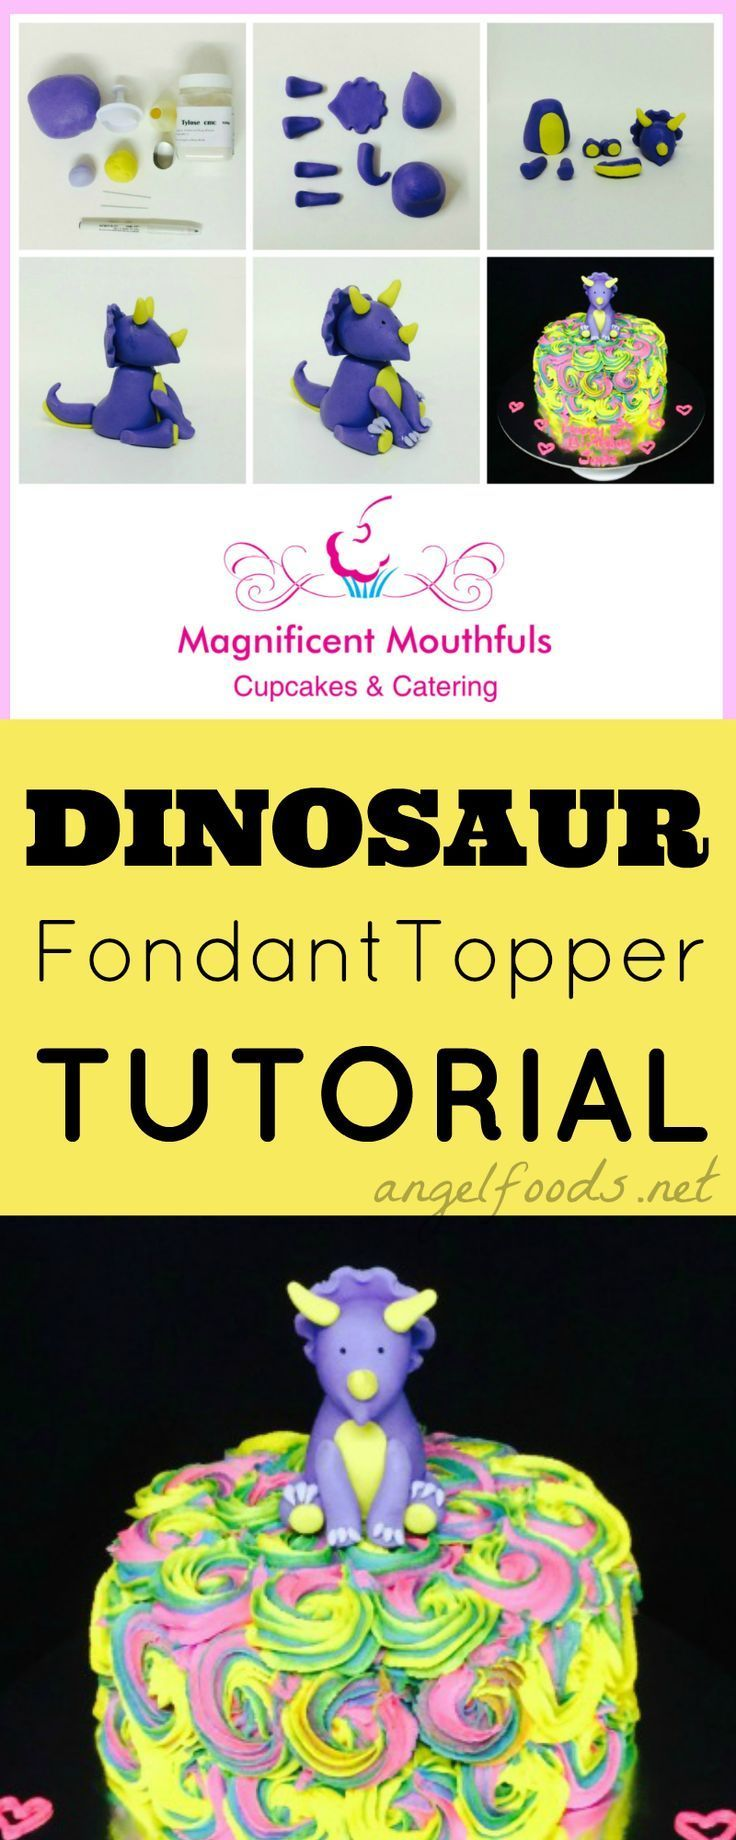 Cute Dinosaur Fondant Cake Topper Tutorial   This is a wonderfully short, simple tutorial on how to make this ever so cute (& easy) dinosaur topper. Perfect for on top of cakes, made with fondant (or gumpaste) or even chocolate modelling paste.   http://angelfoods.net/cute-dinosaur-fondant-cake-topper-tutorial/